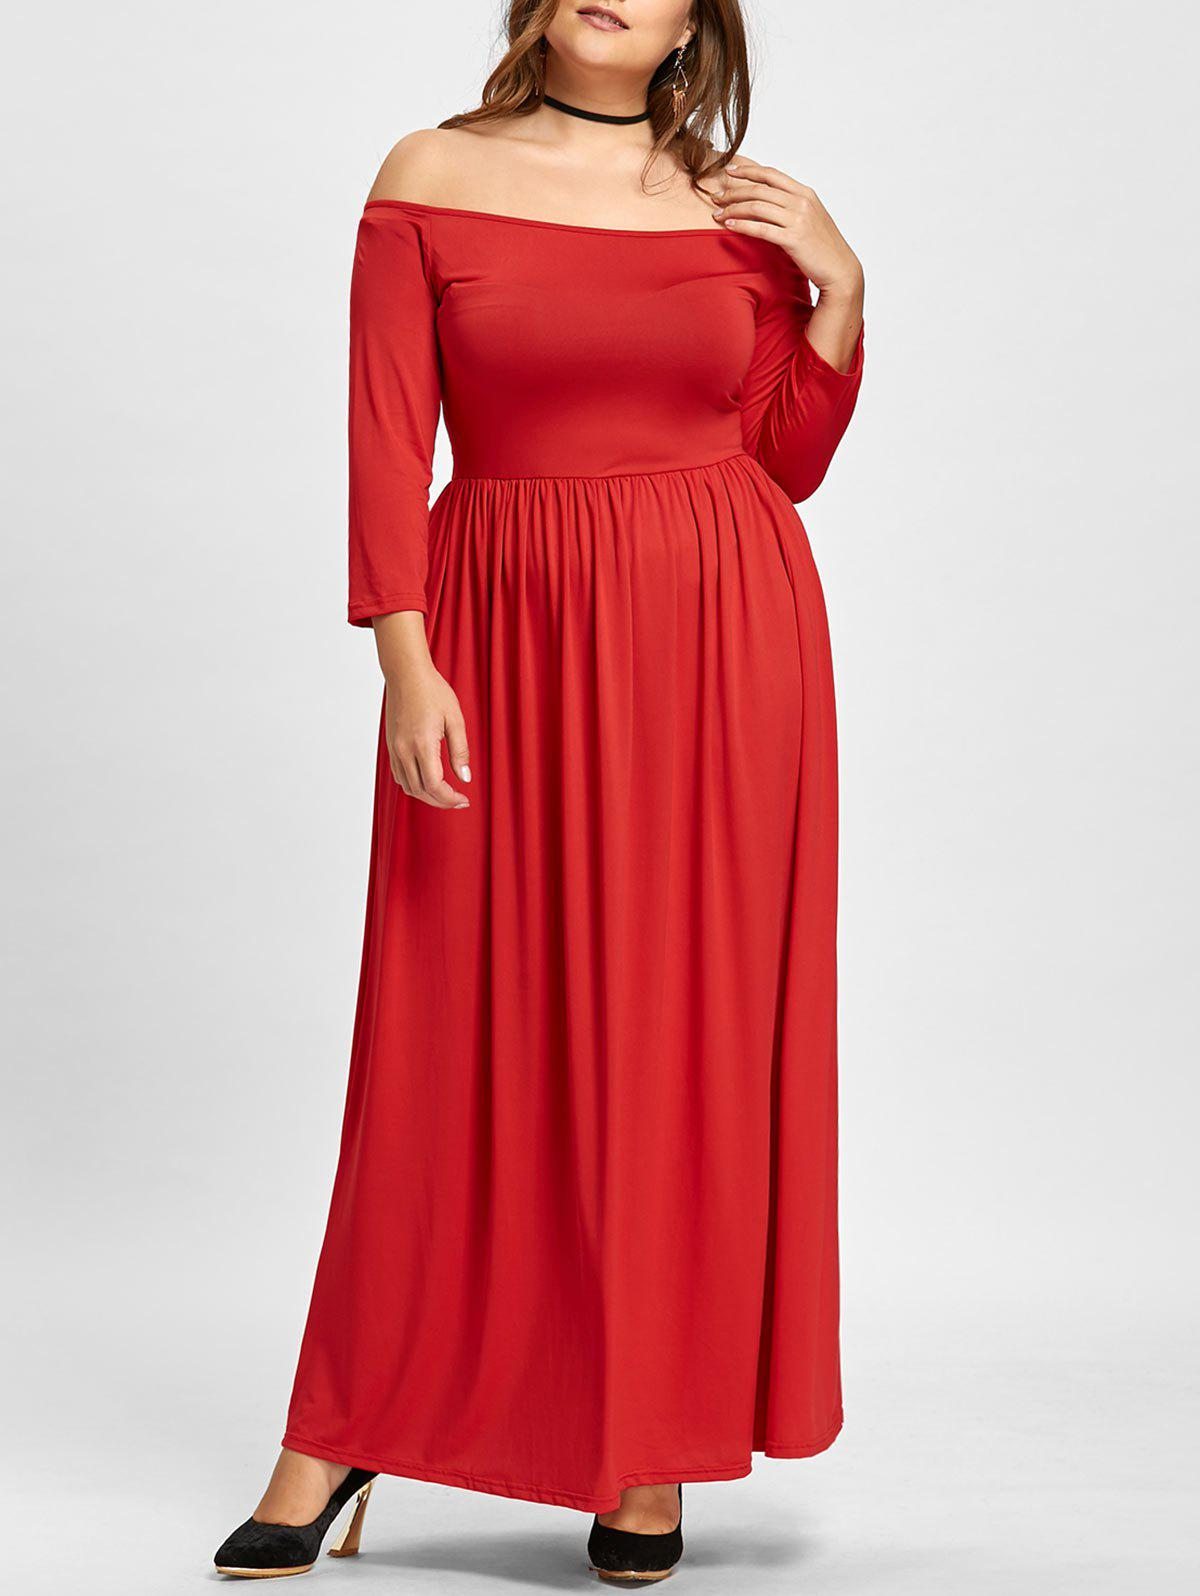 2018 Empire Waist Plus Size OFF The Shoulder Maxi Formal ...